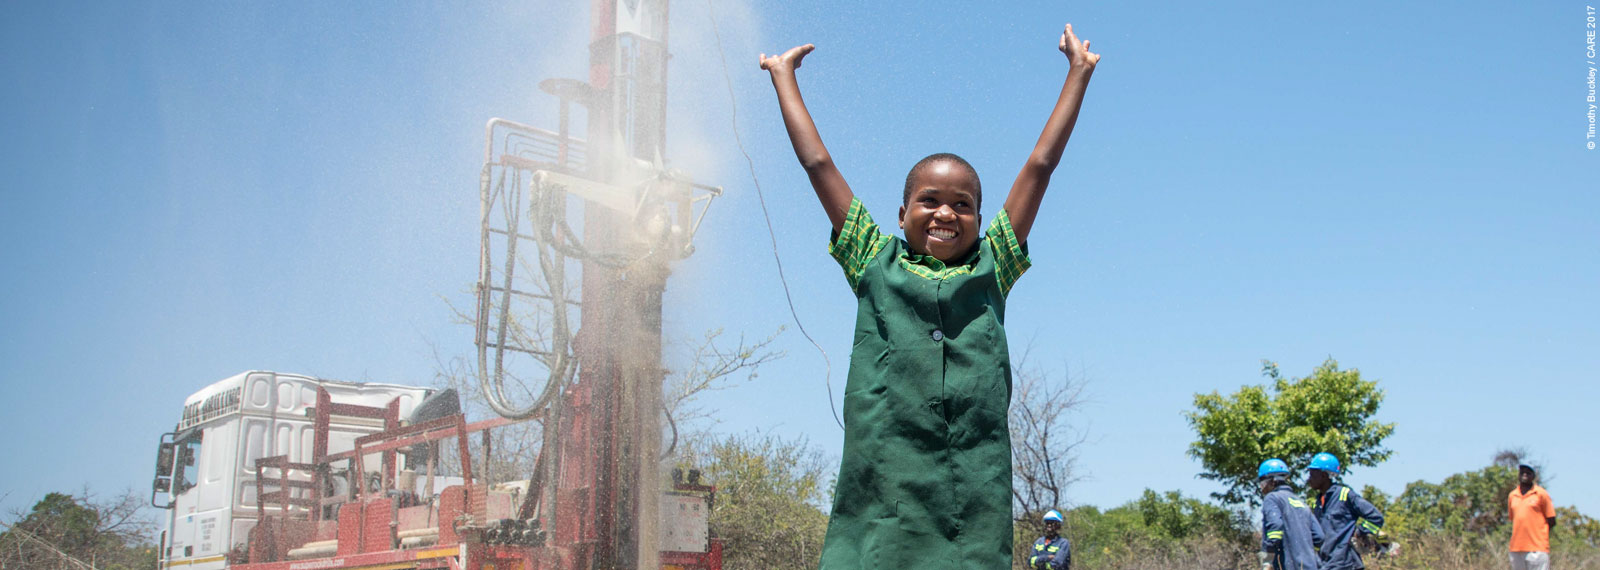 Precious celebrating at water borehole